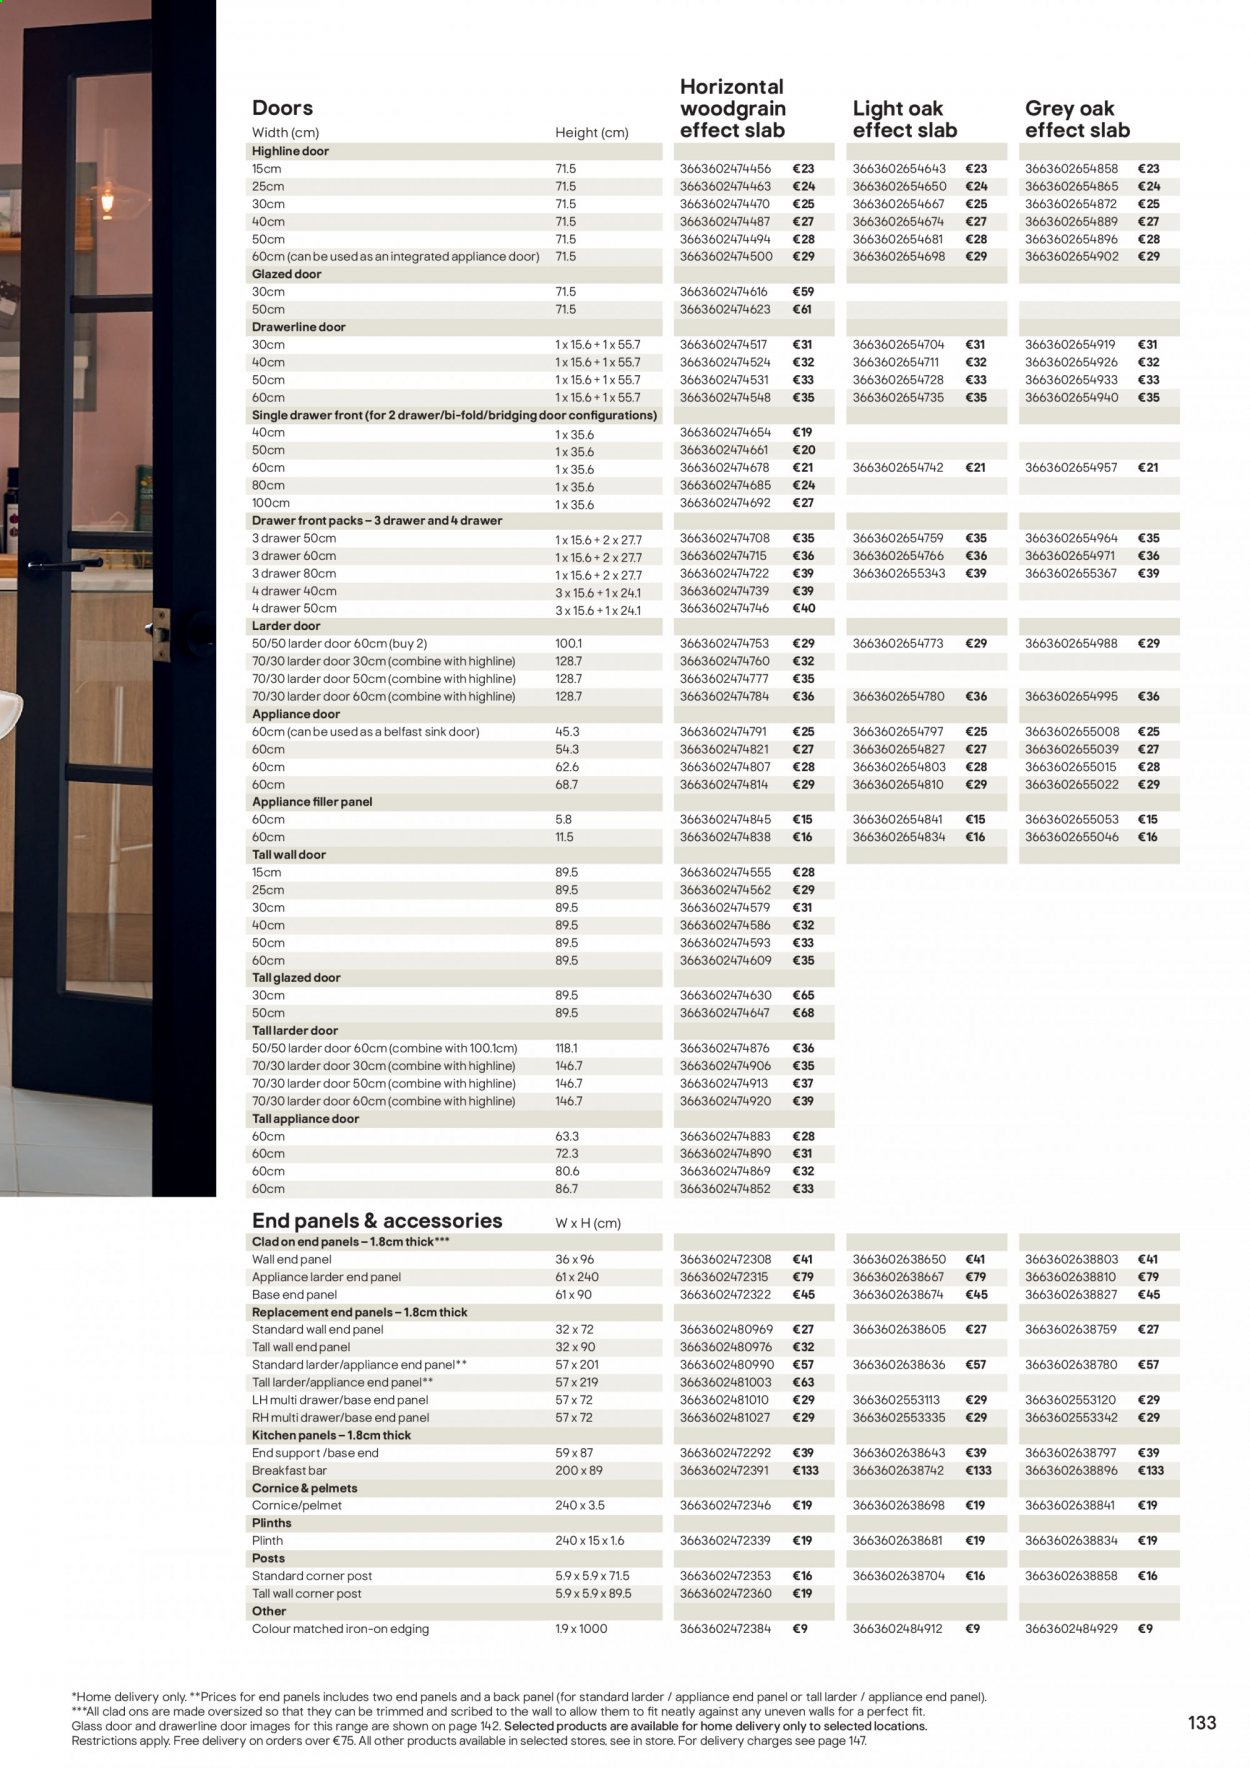 B&Q offer  - Sales products - door, drawer, glass, sink, iron, Kitchen, bar. Page 133.